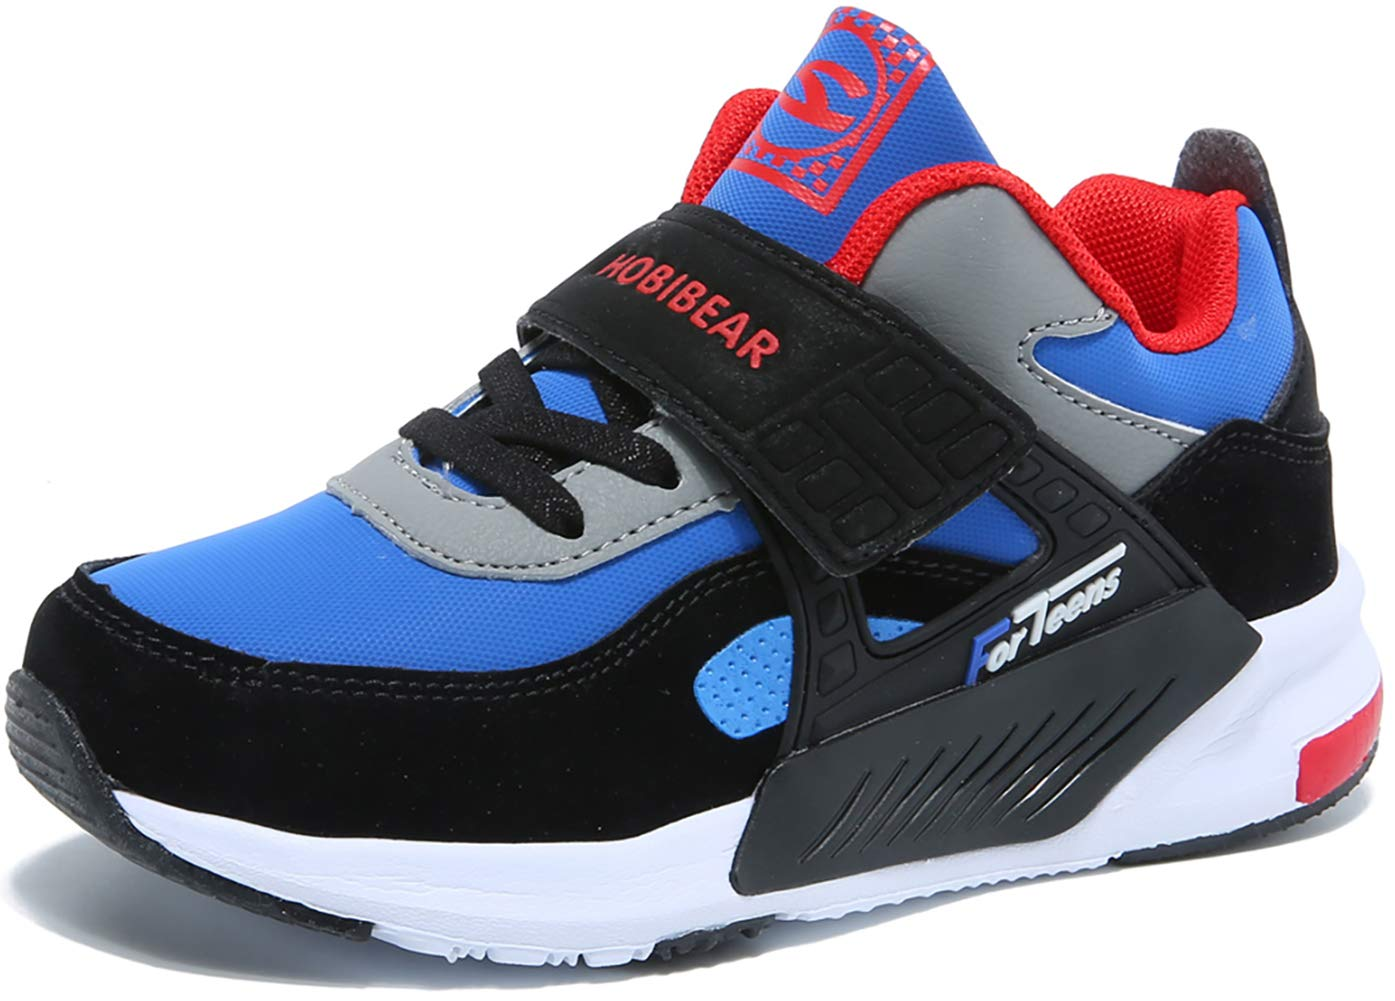 GUBARUN Running Shoes for Kids Outdoor Hiking Athletic Boys Sneakers-Blue/Black by GUBARUN (Image #2)